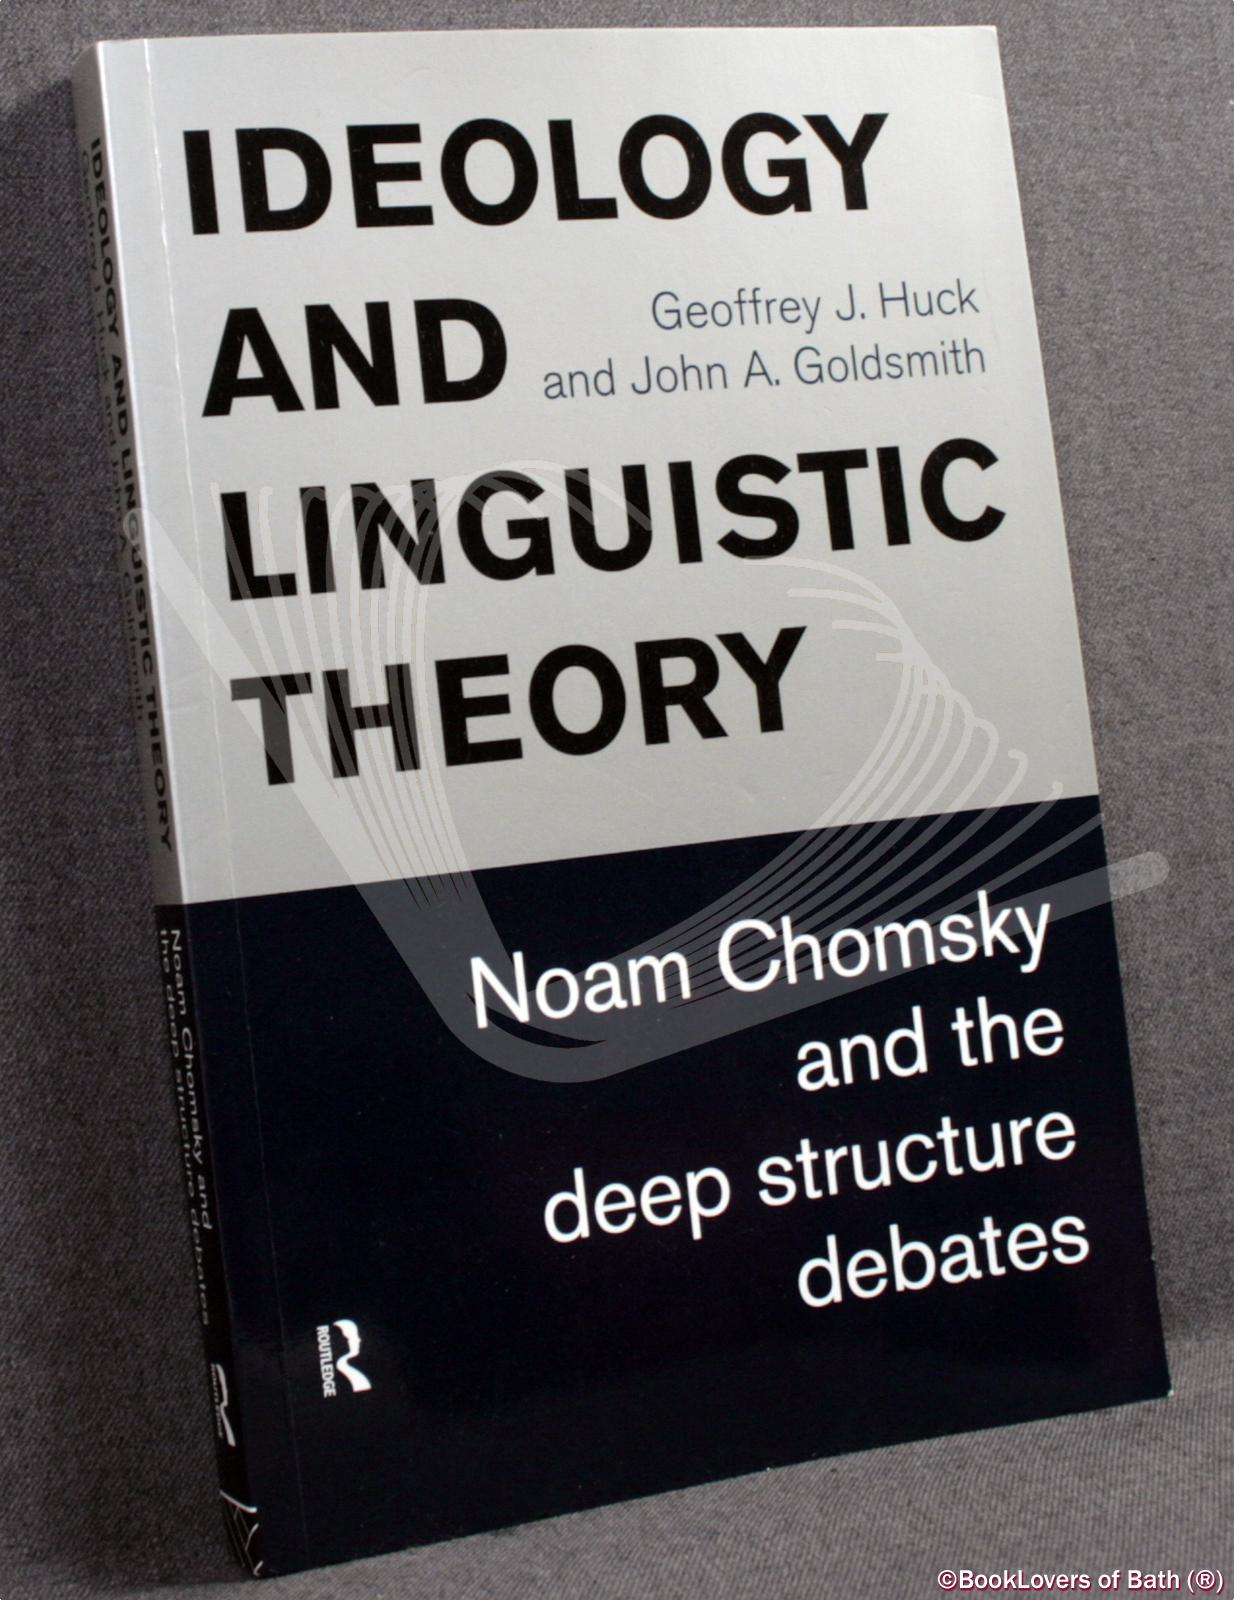 Ideology and Linguistic Theory: Noam Chomsky and the Deep Structure Debates - Geoffrey J. Huck & John A. Goldsmith